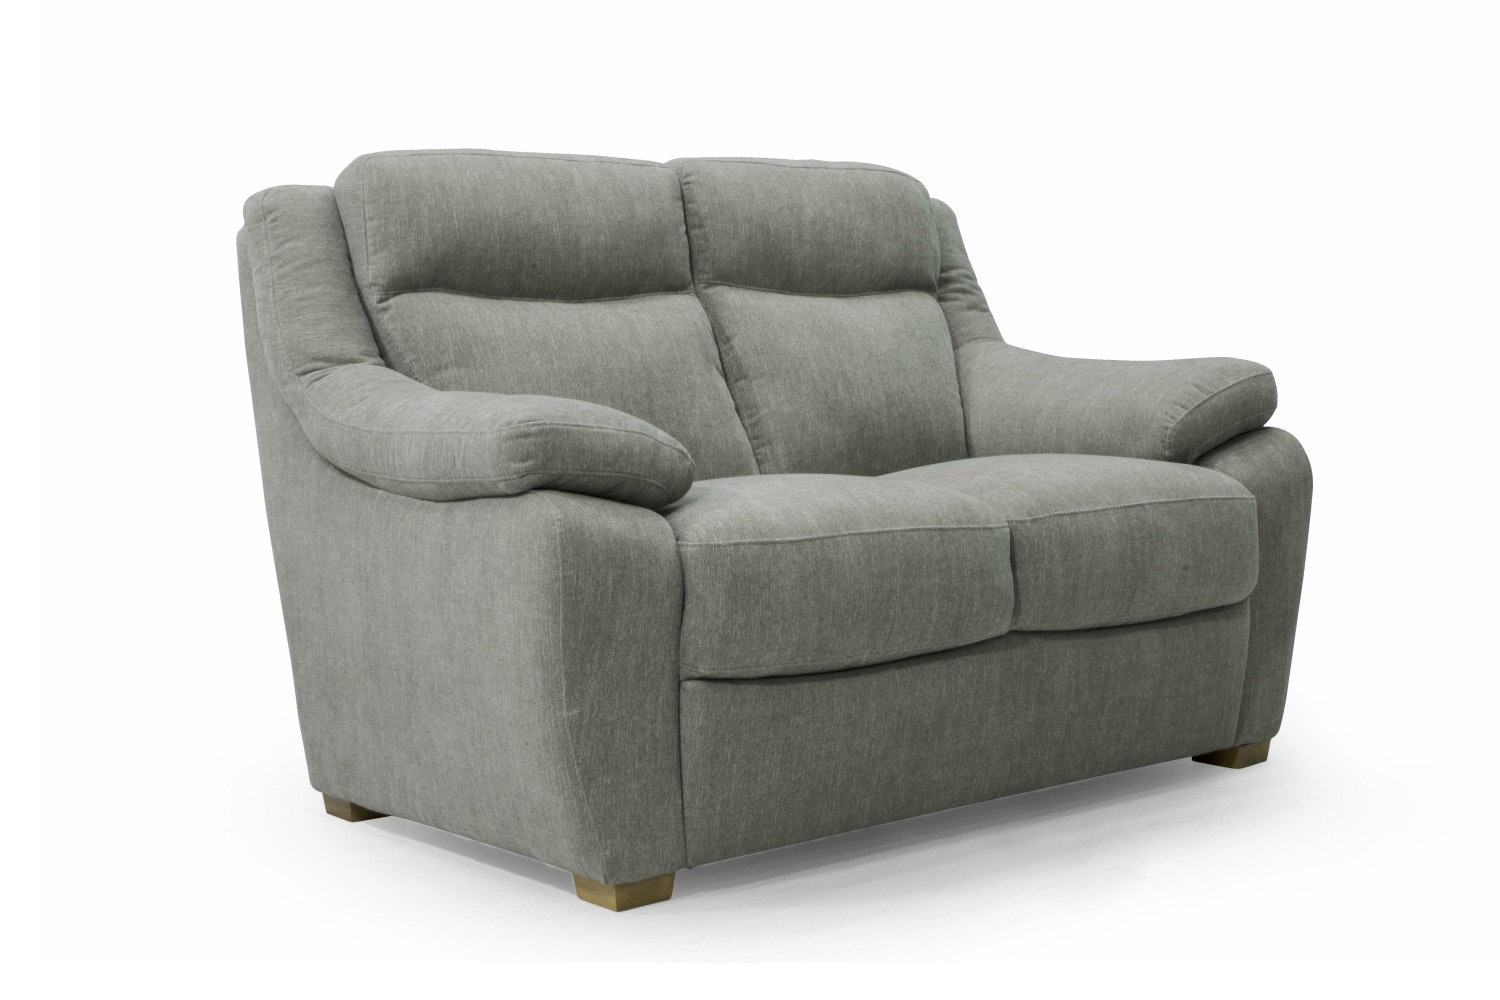 Michelangelo 3 Seater Sofa | Grey Fabric